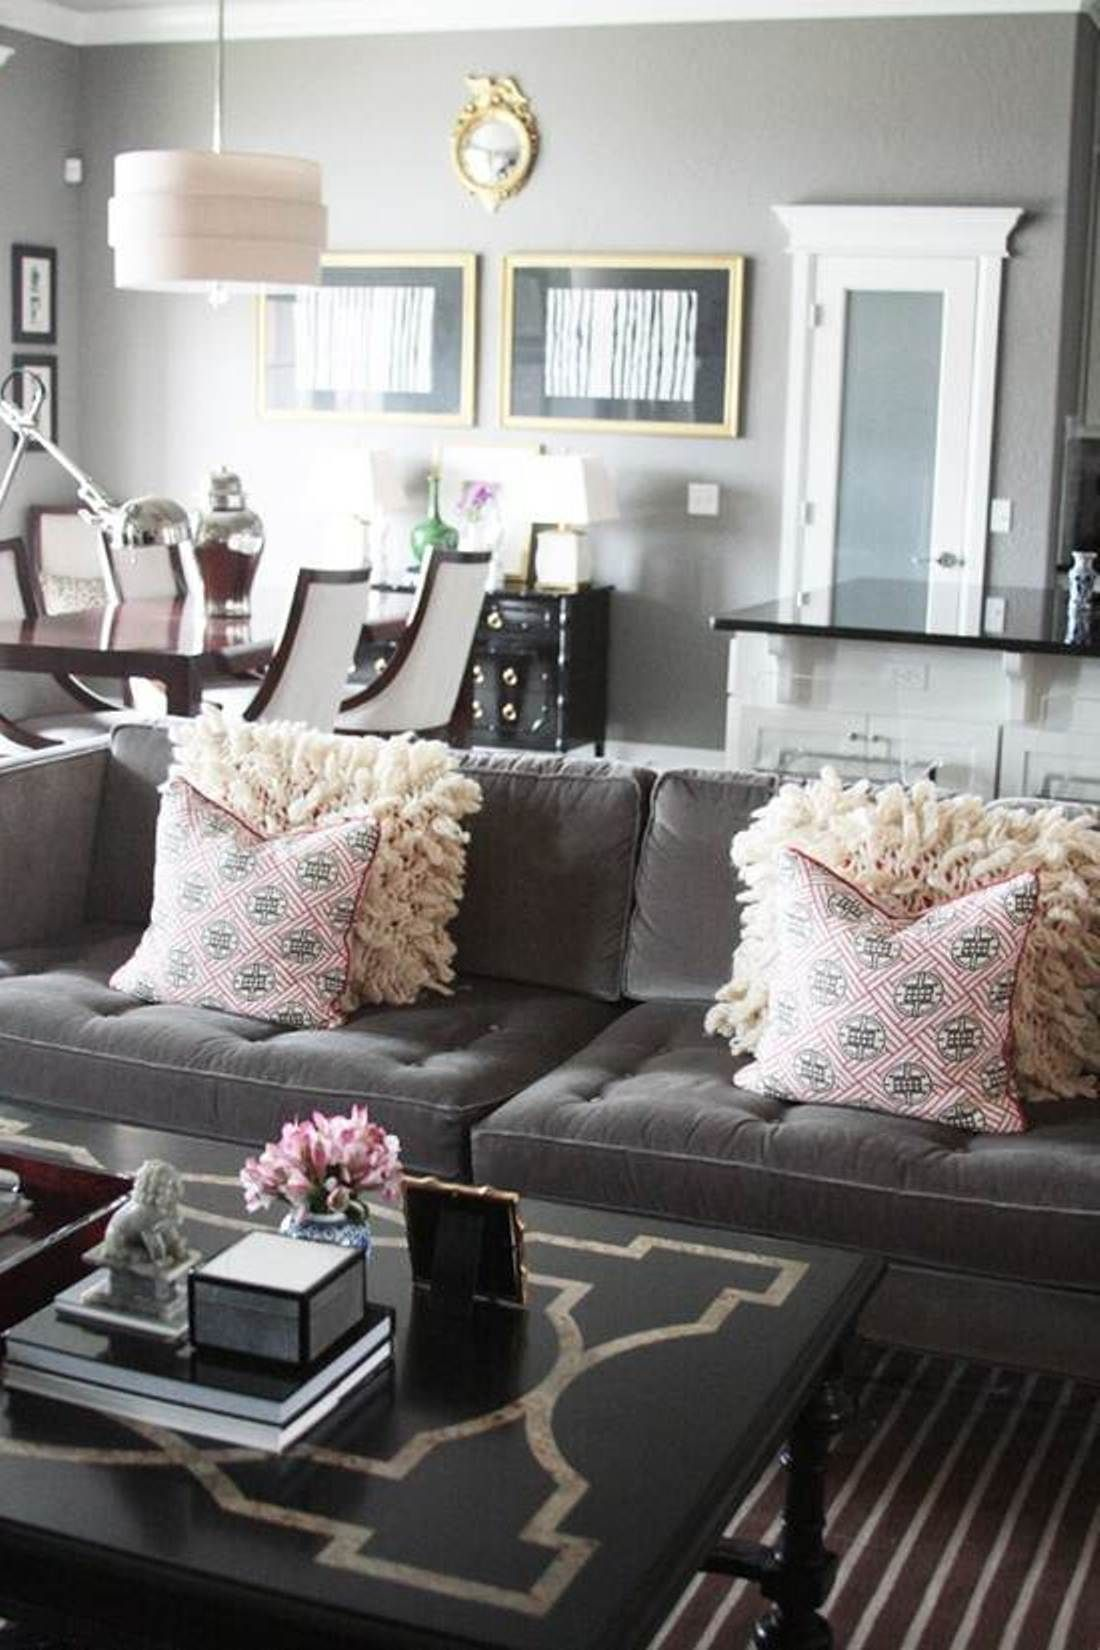 Great Neutral Paint Colors For Living Room Timeless Neutral Paint Colors For Living Ro Living Room Colors Paint Colors For Living Room Living Room Decor Gray